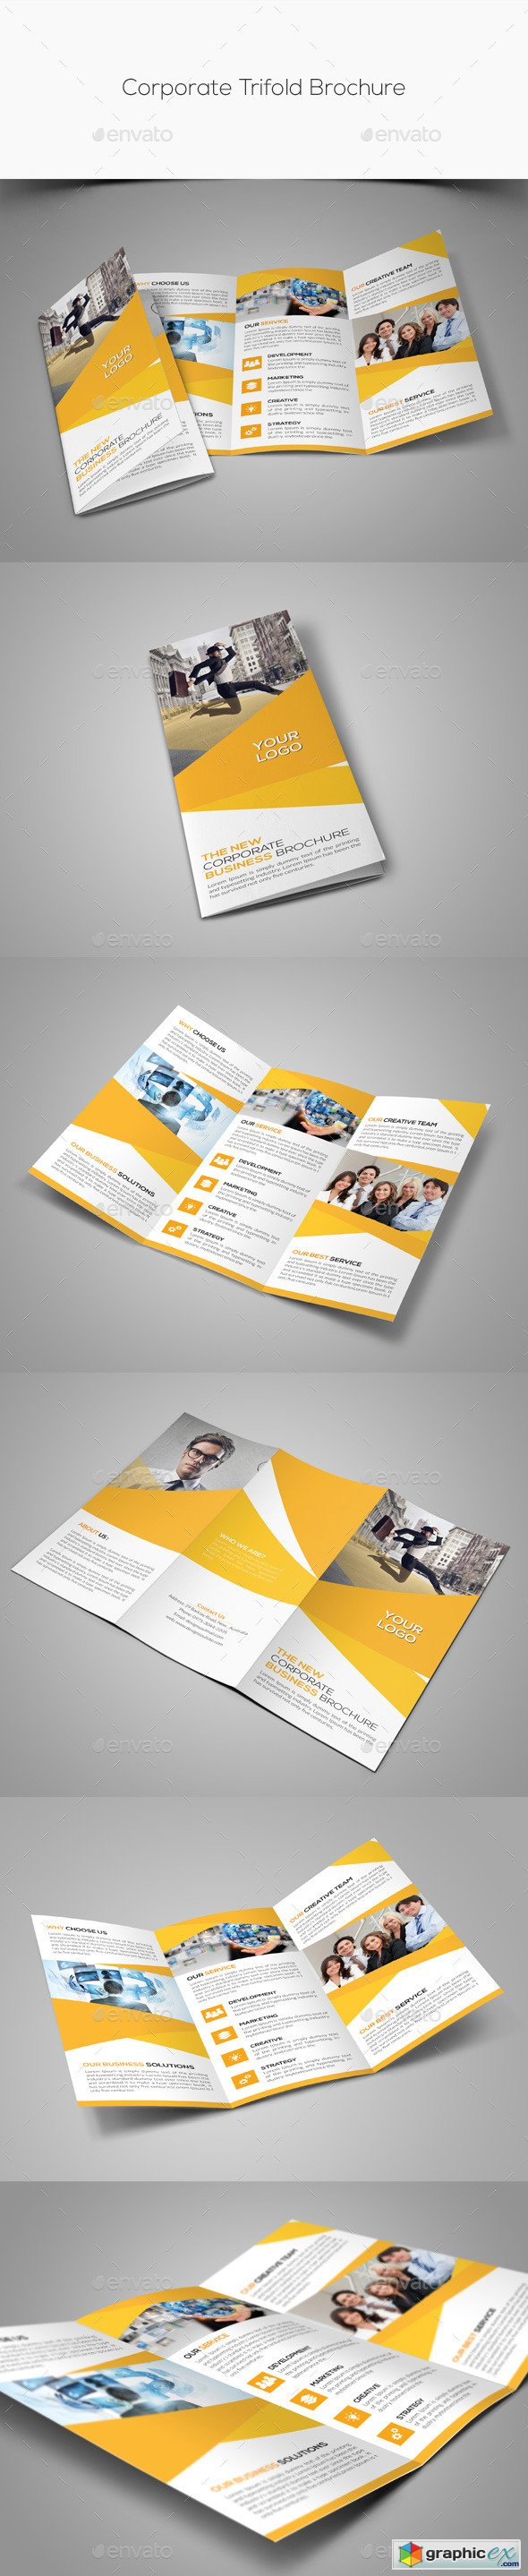 Corporate Trifold Brochure 11183424